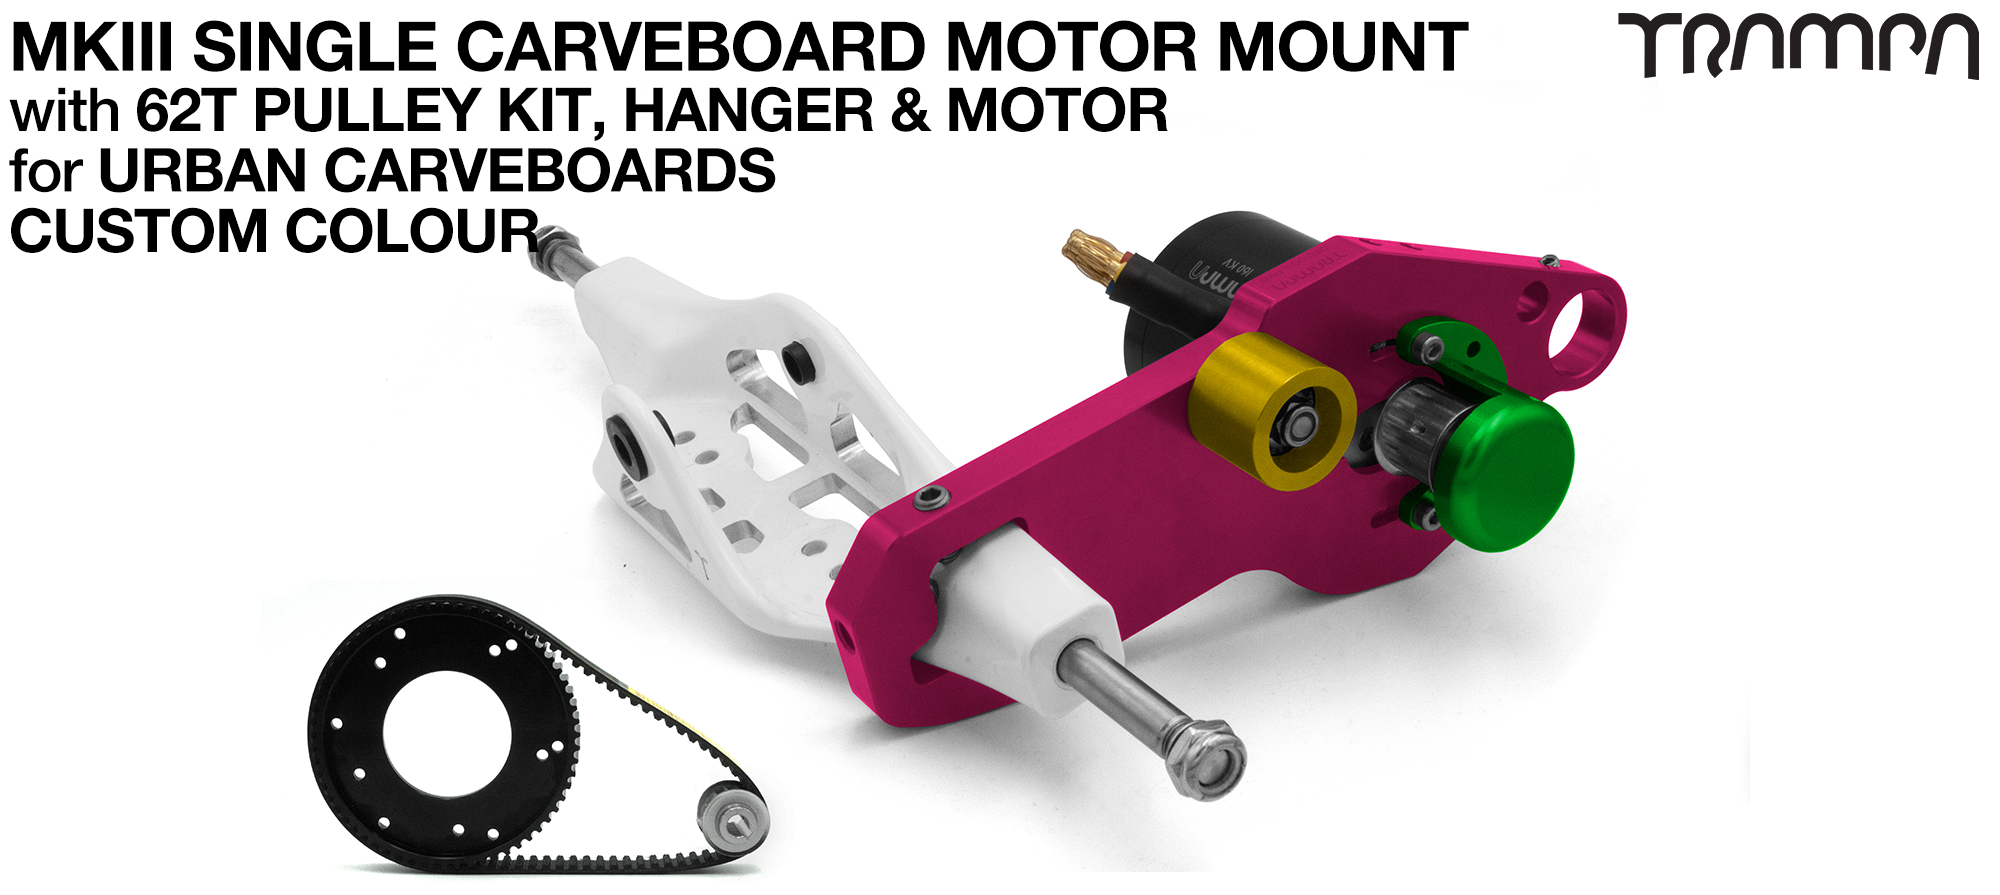 MkIII URBAN CARVEBOARD Motormount on a Mini HANGER with 62 Tooth Pulley Kit & Motor - SINGLE